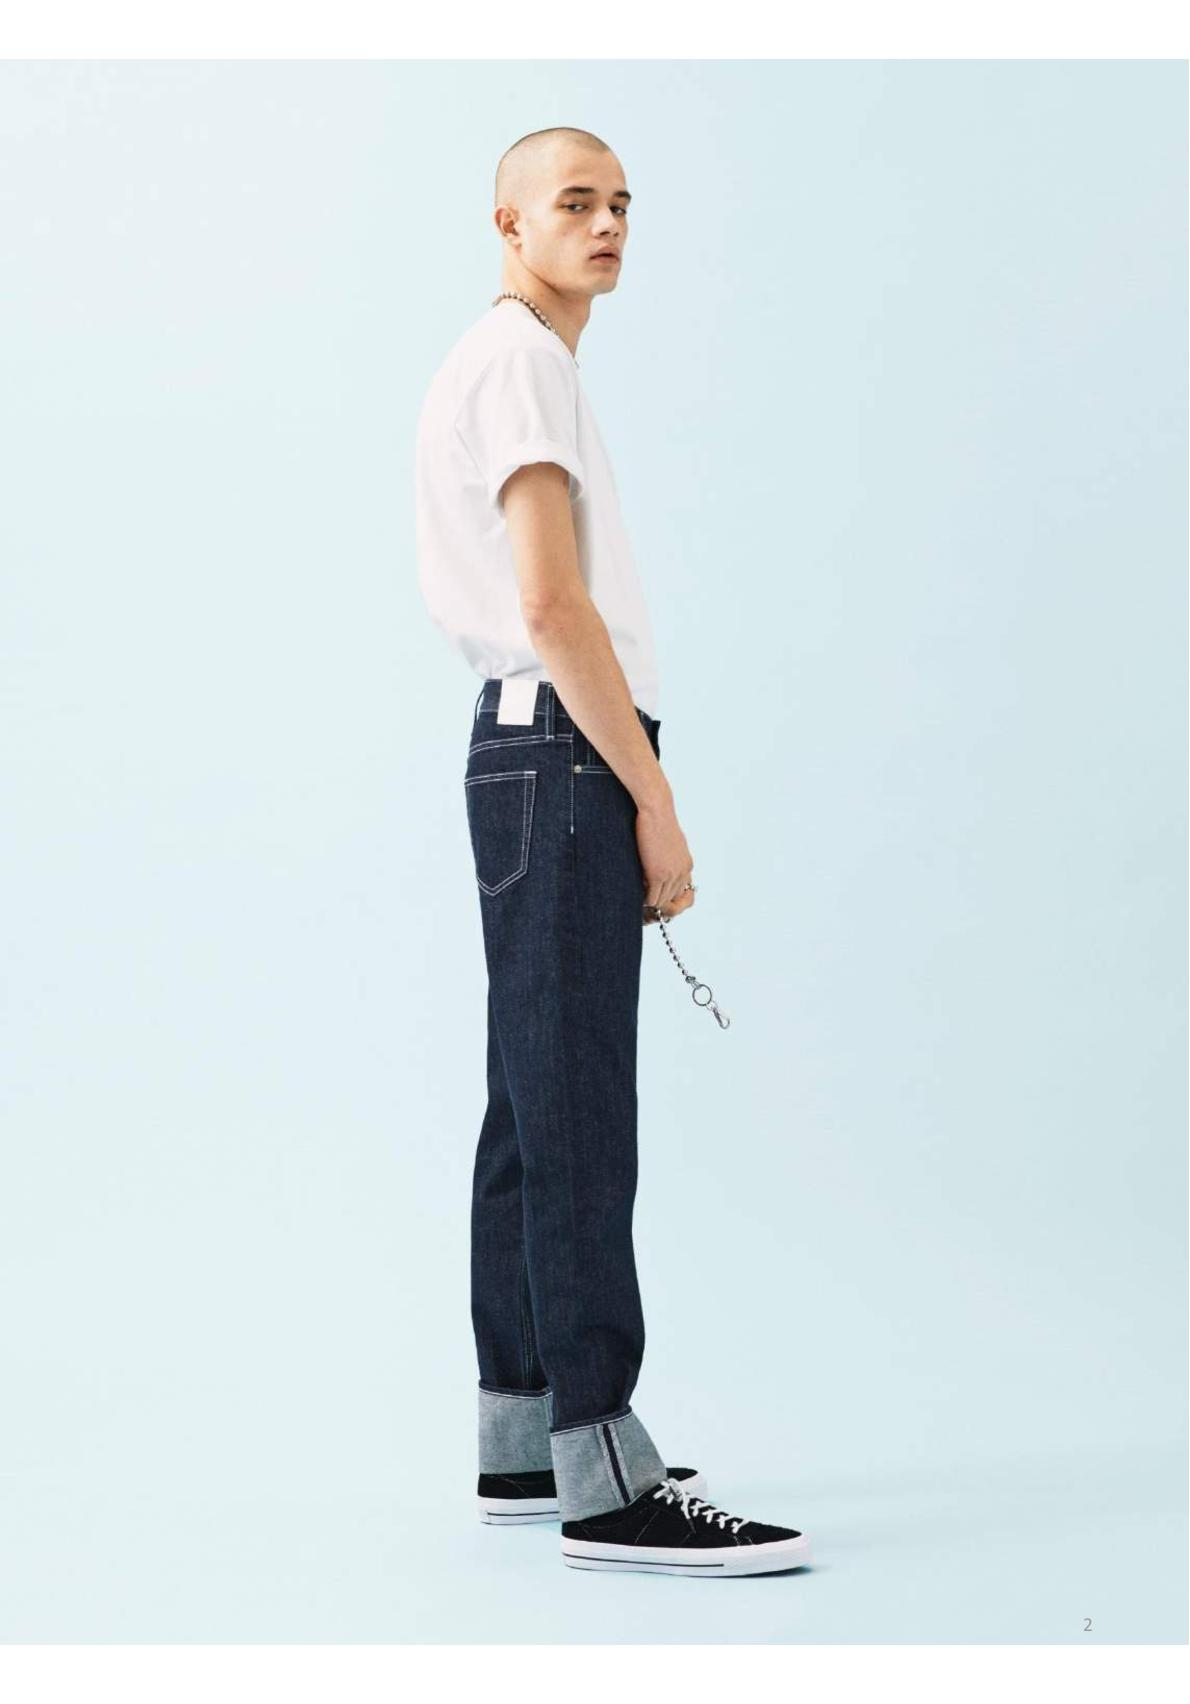 f5_weekday_ss17_lookbook_jean_campaign_low_res-page-003.jpg